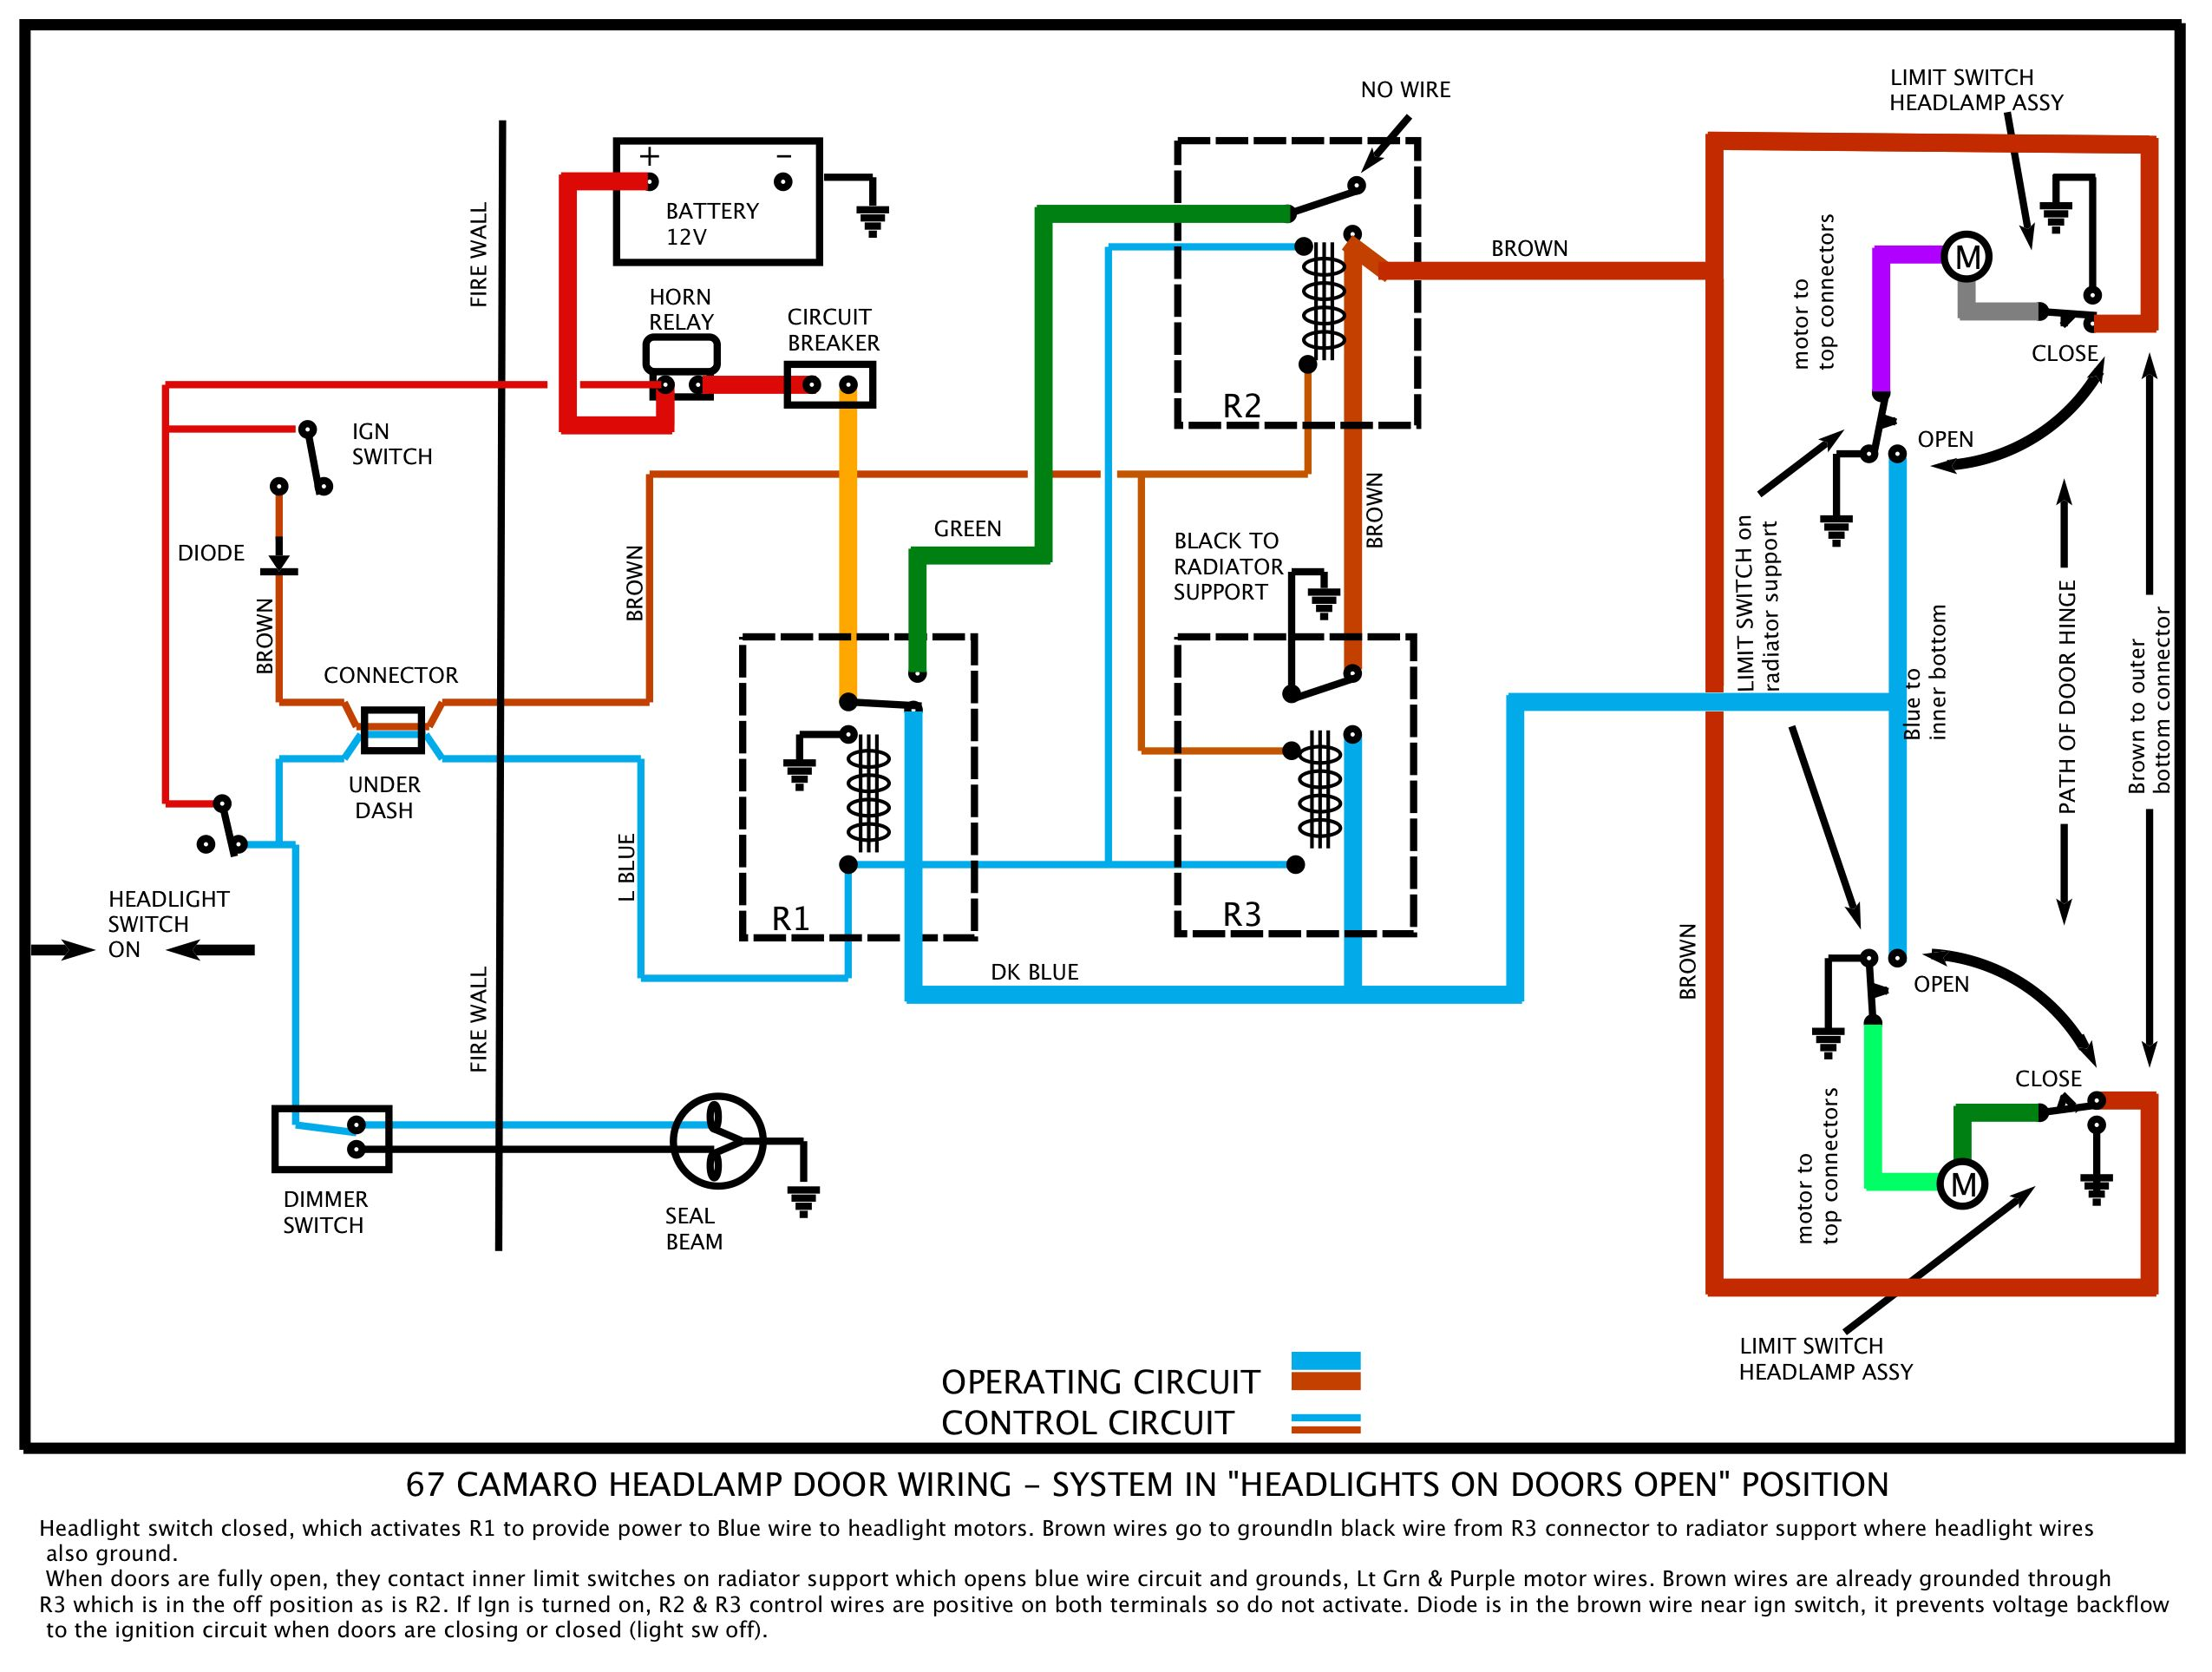 Wiring Diagram Automatic Car Headlight Dim Switch System Real Auto Headlight Dimmer Switch Wiring Diagram